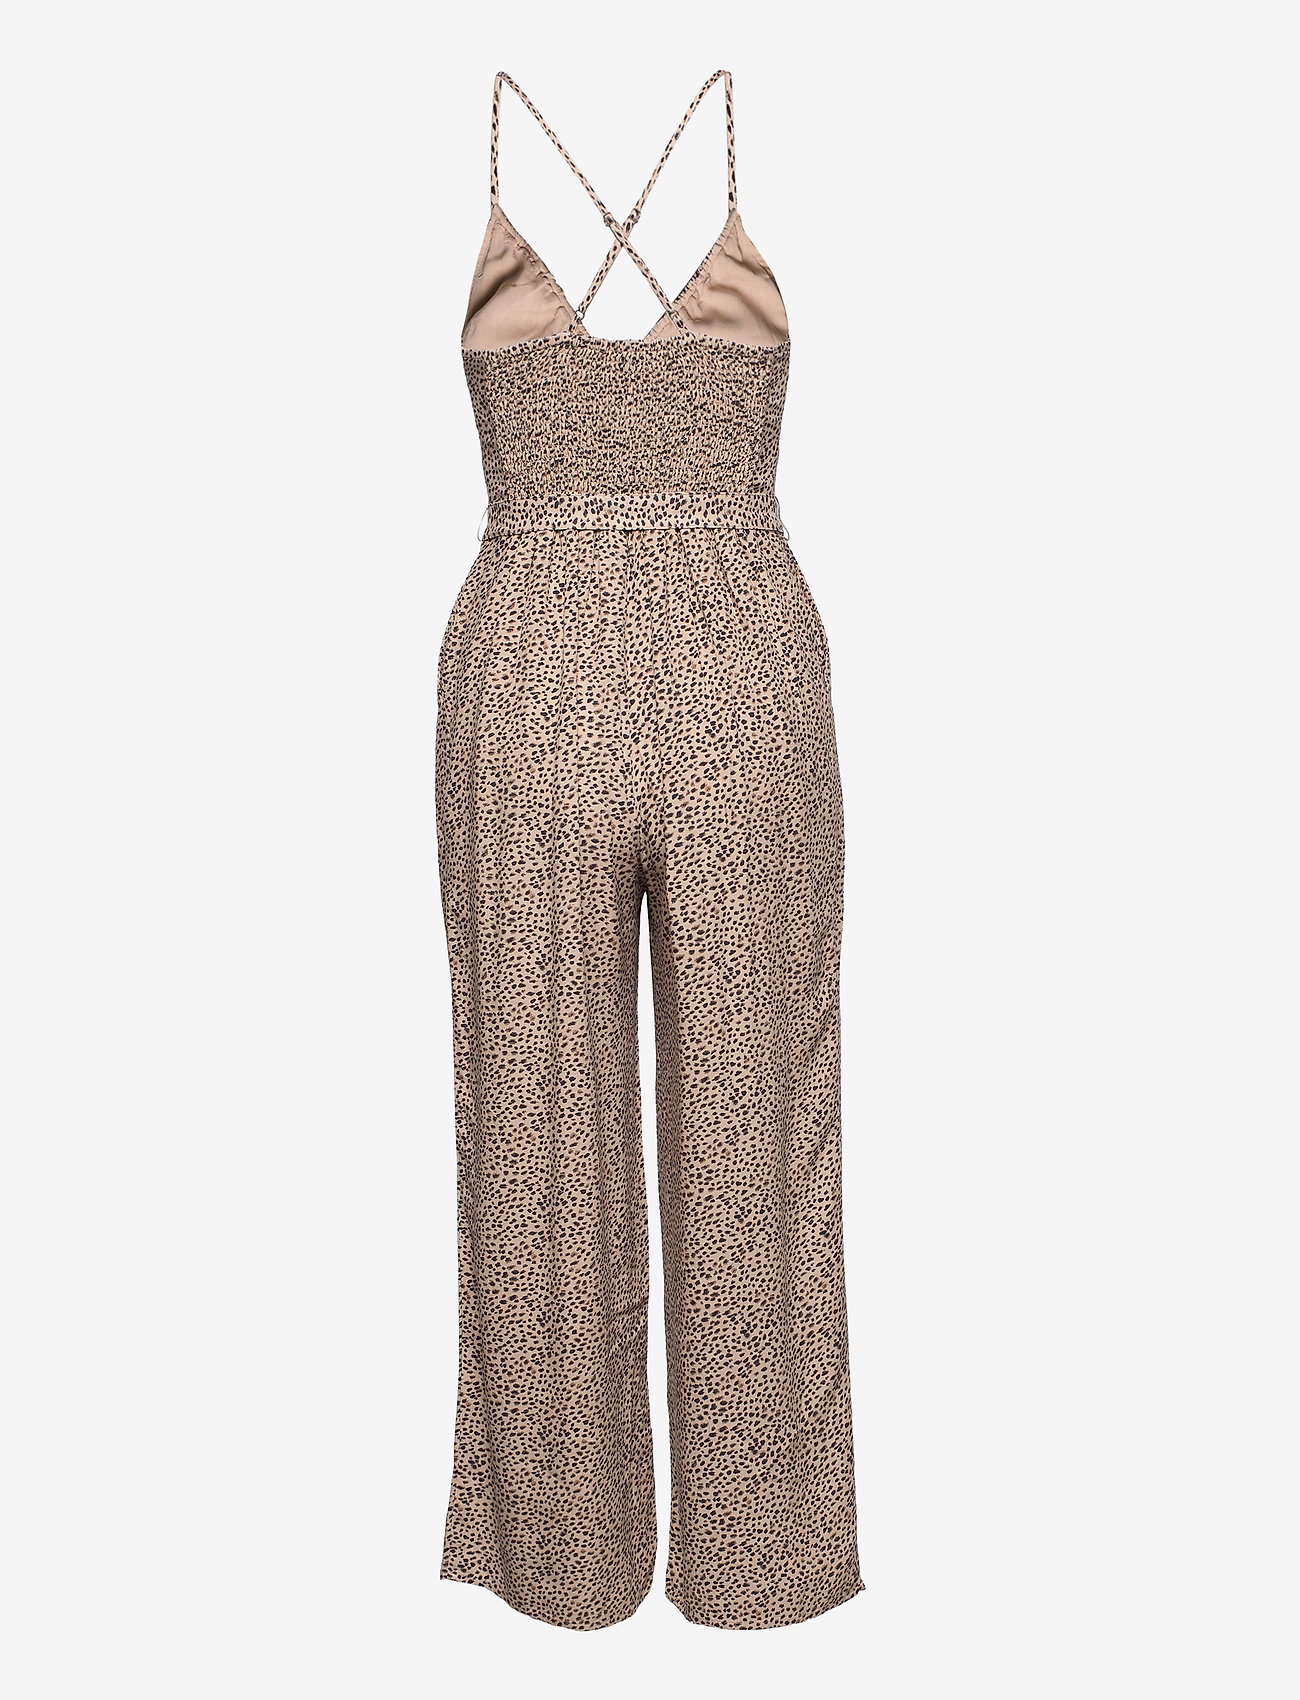 Abercrombie & Fitch - ANF WOMENS DRESSES - jumpsuits - animal - 1